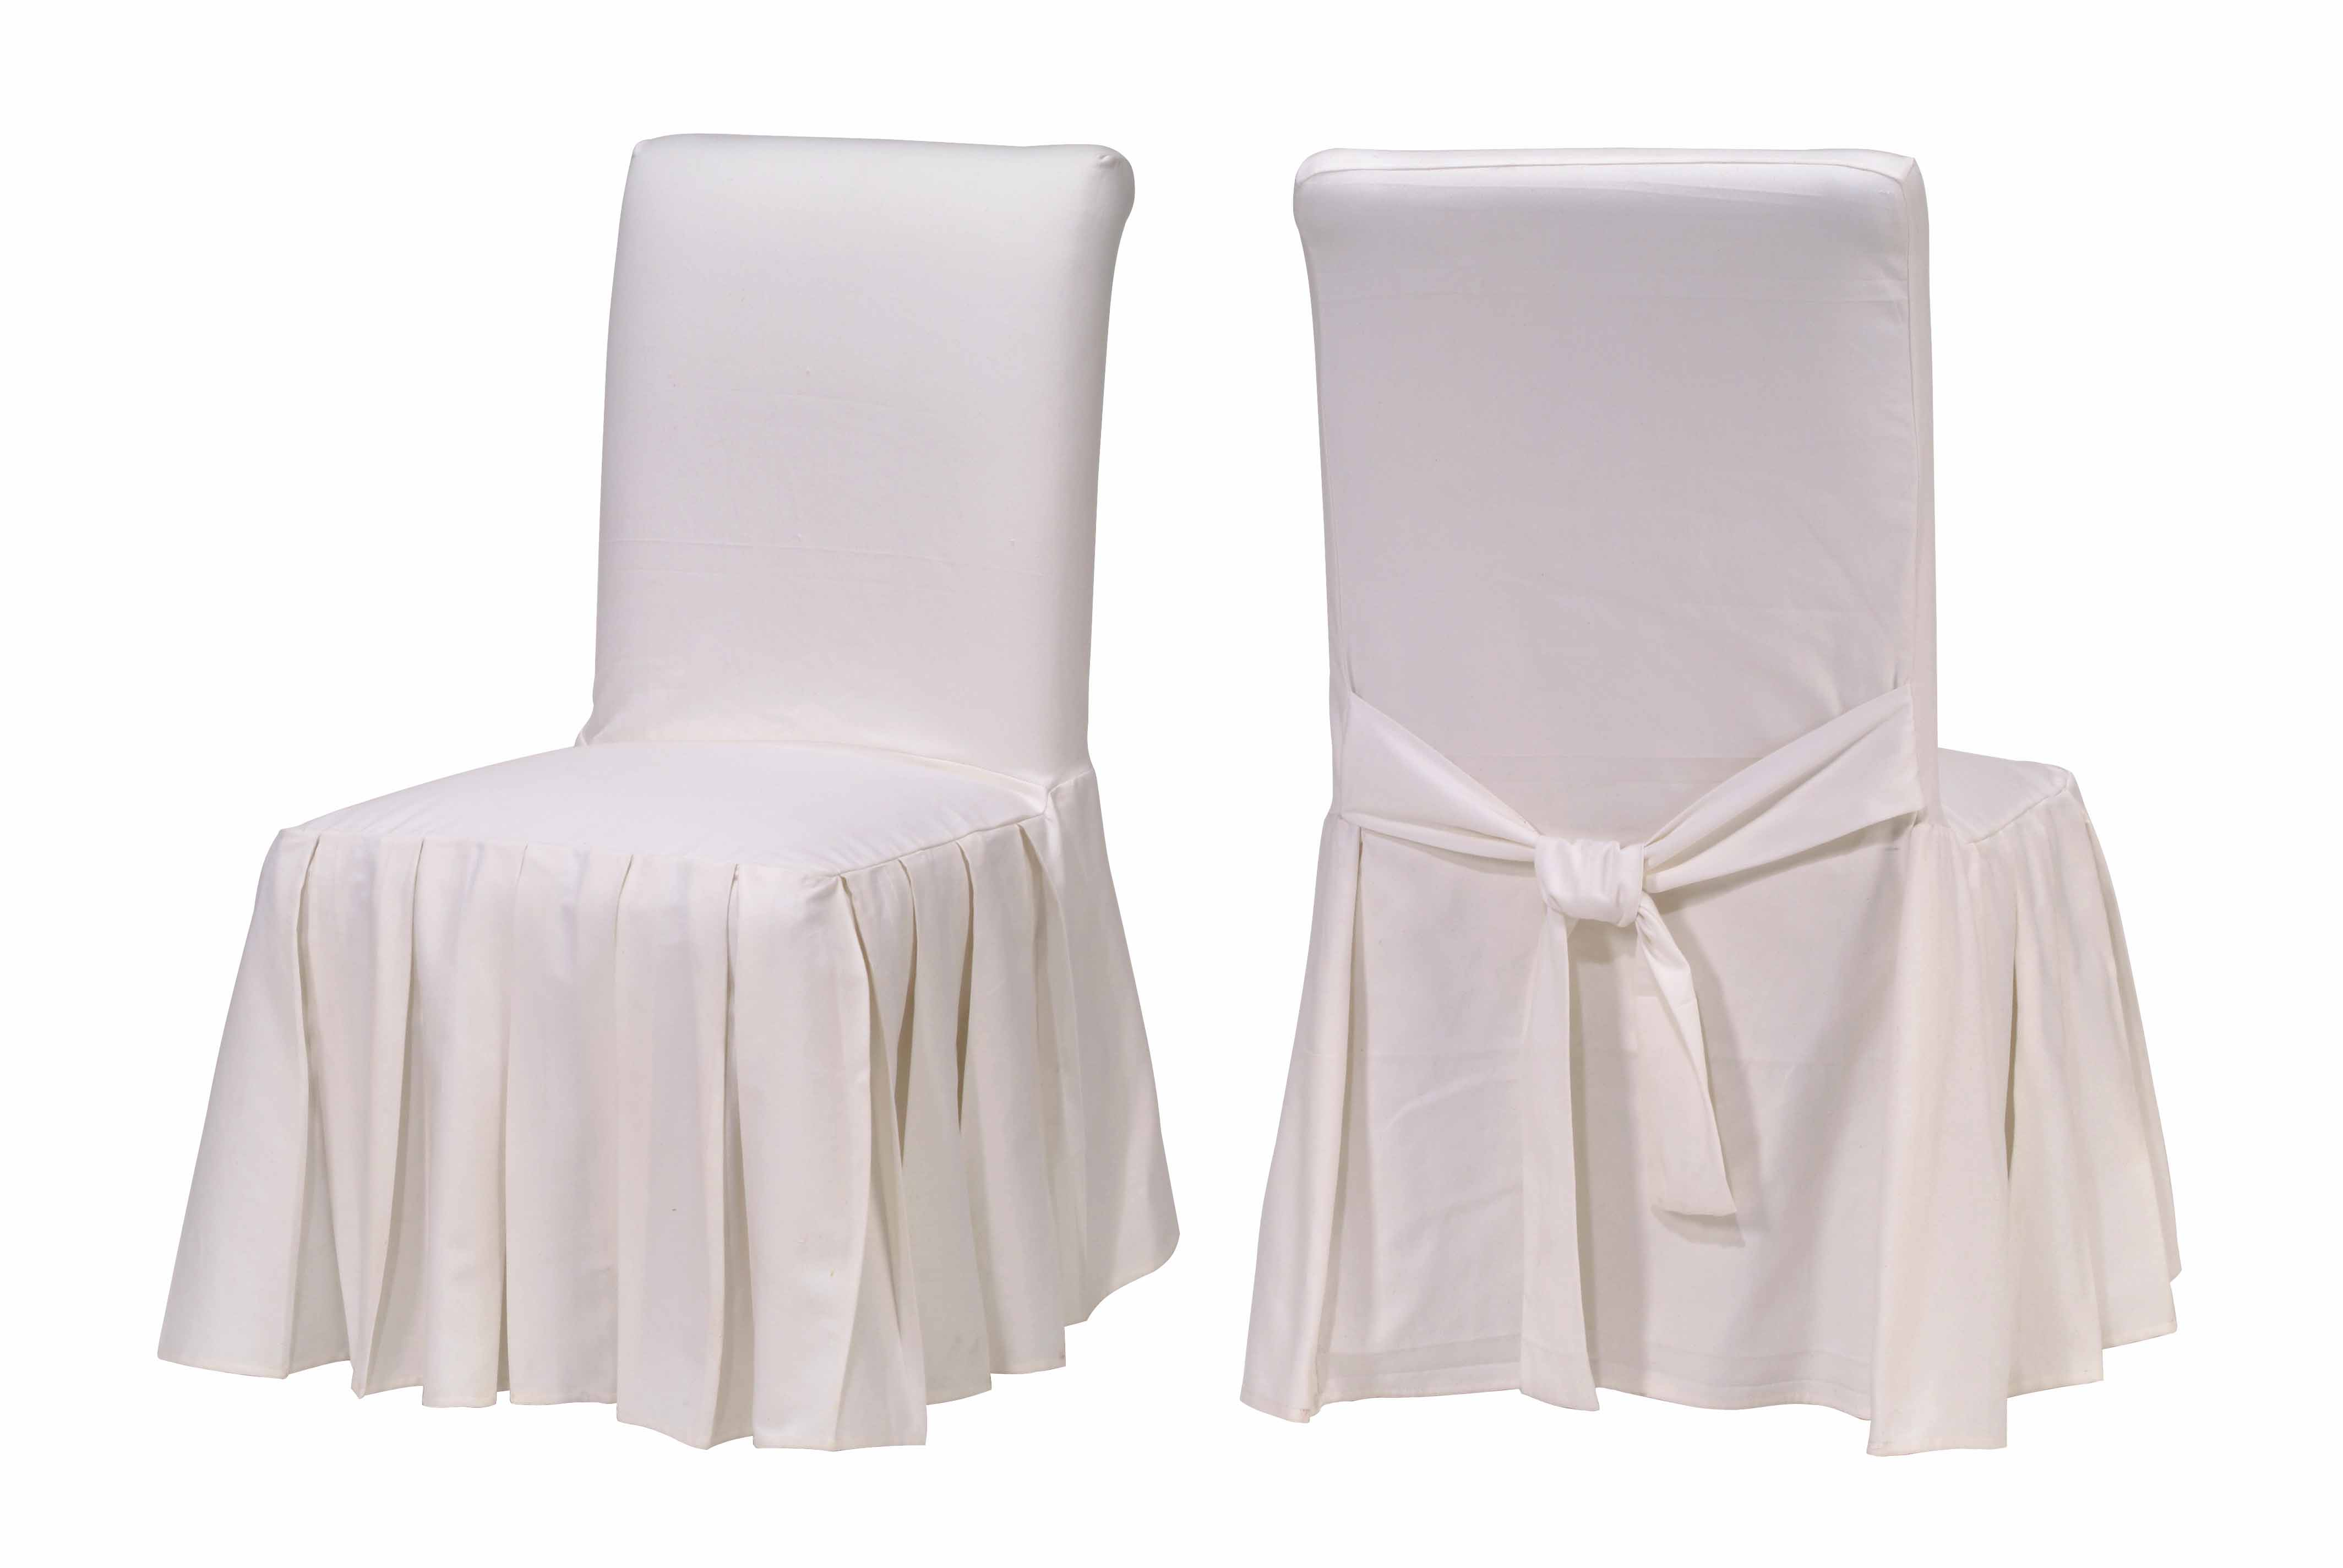 Magnificent Cotton Duck White Pleated Dining Chair Slipcovers Overstock Com Shopping The Best Deals On Chair Slipcovers Cjindustries Chair Design For Home Cjindustriesco